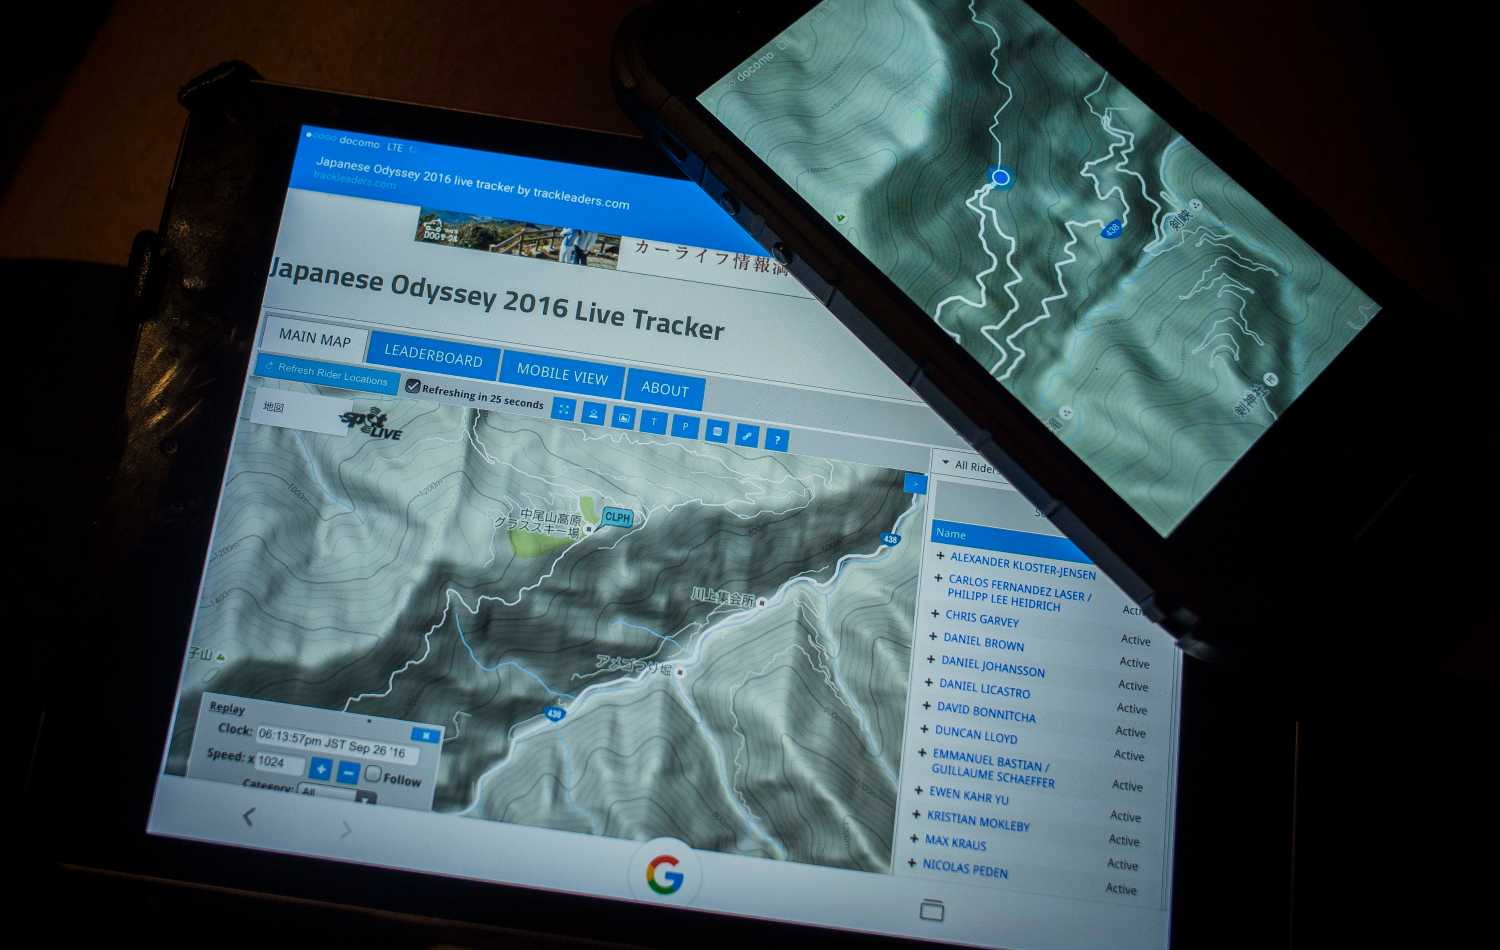 A tablet and a mobile phone show tracking data for the race